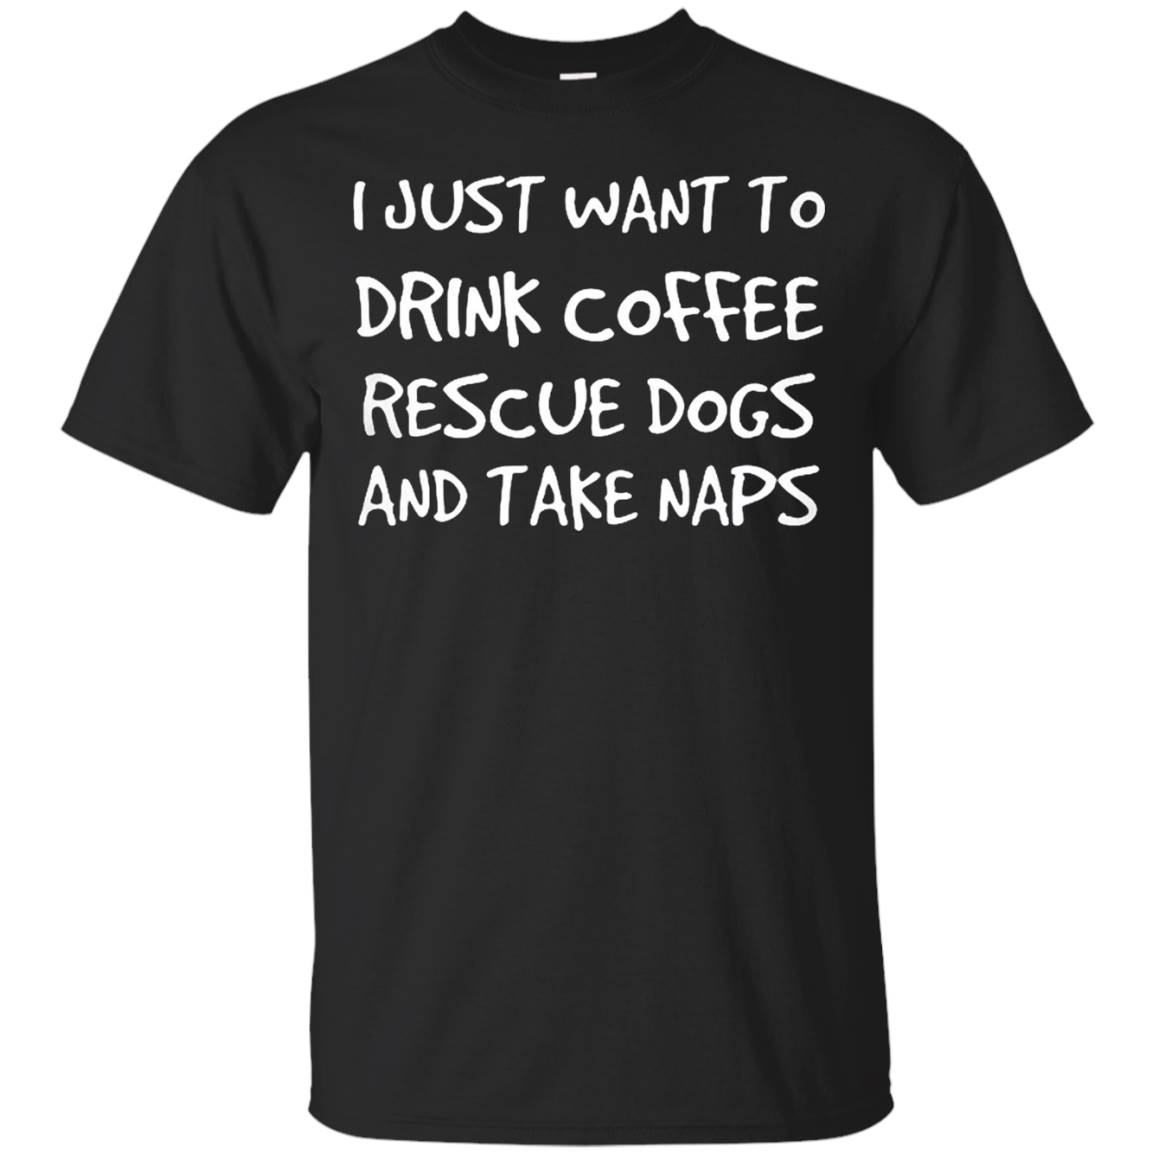 I Just Want To Drink Coffee Rescue Dogs And Take Naps Shirt